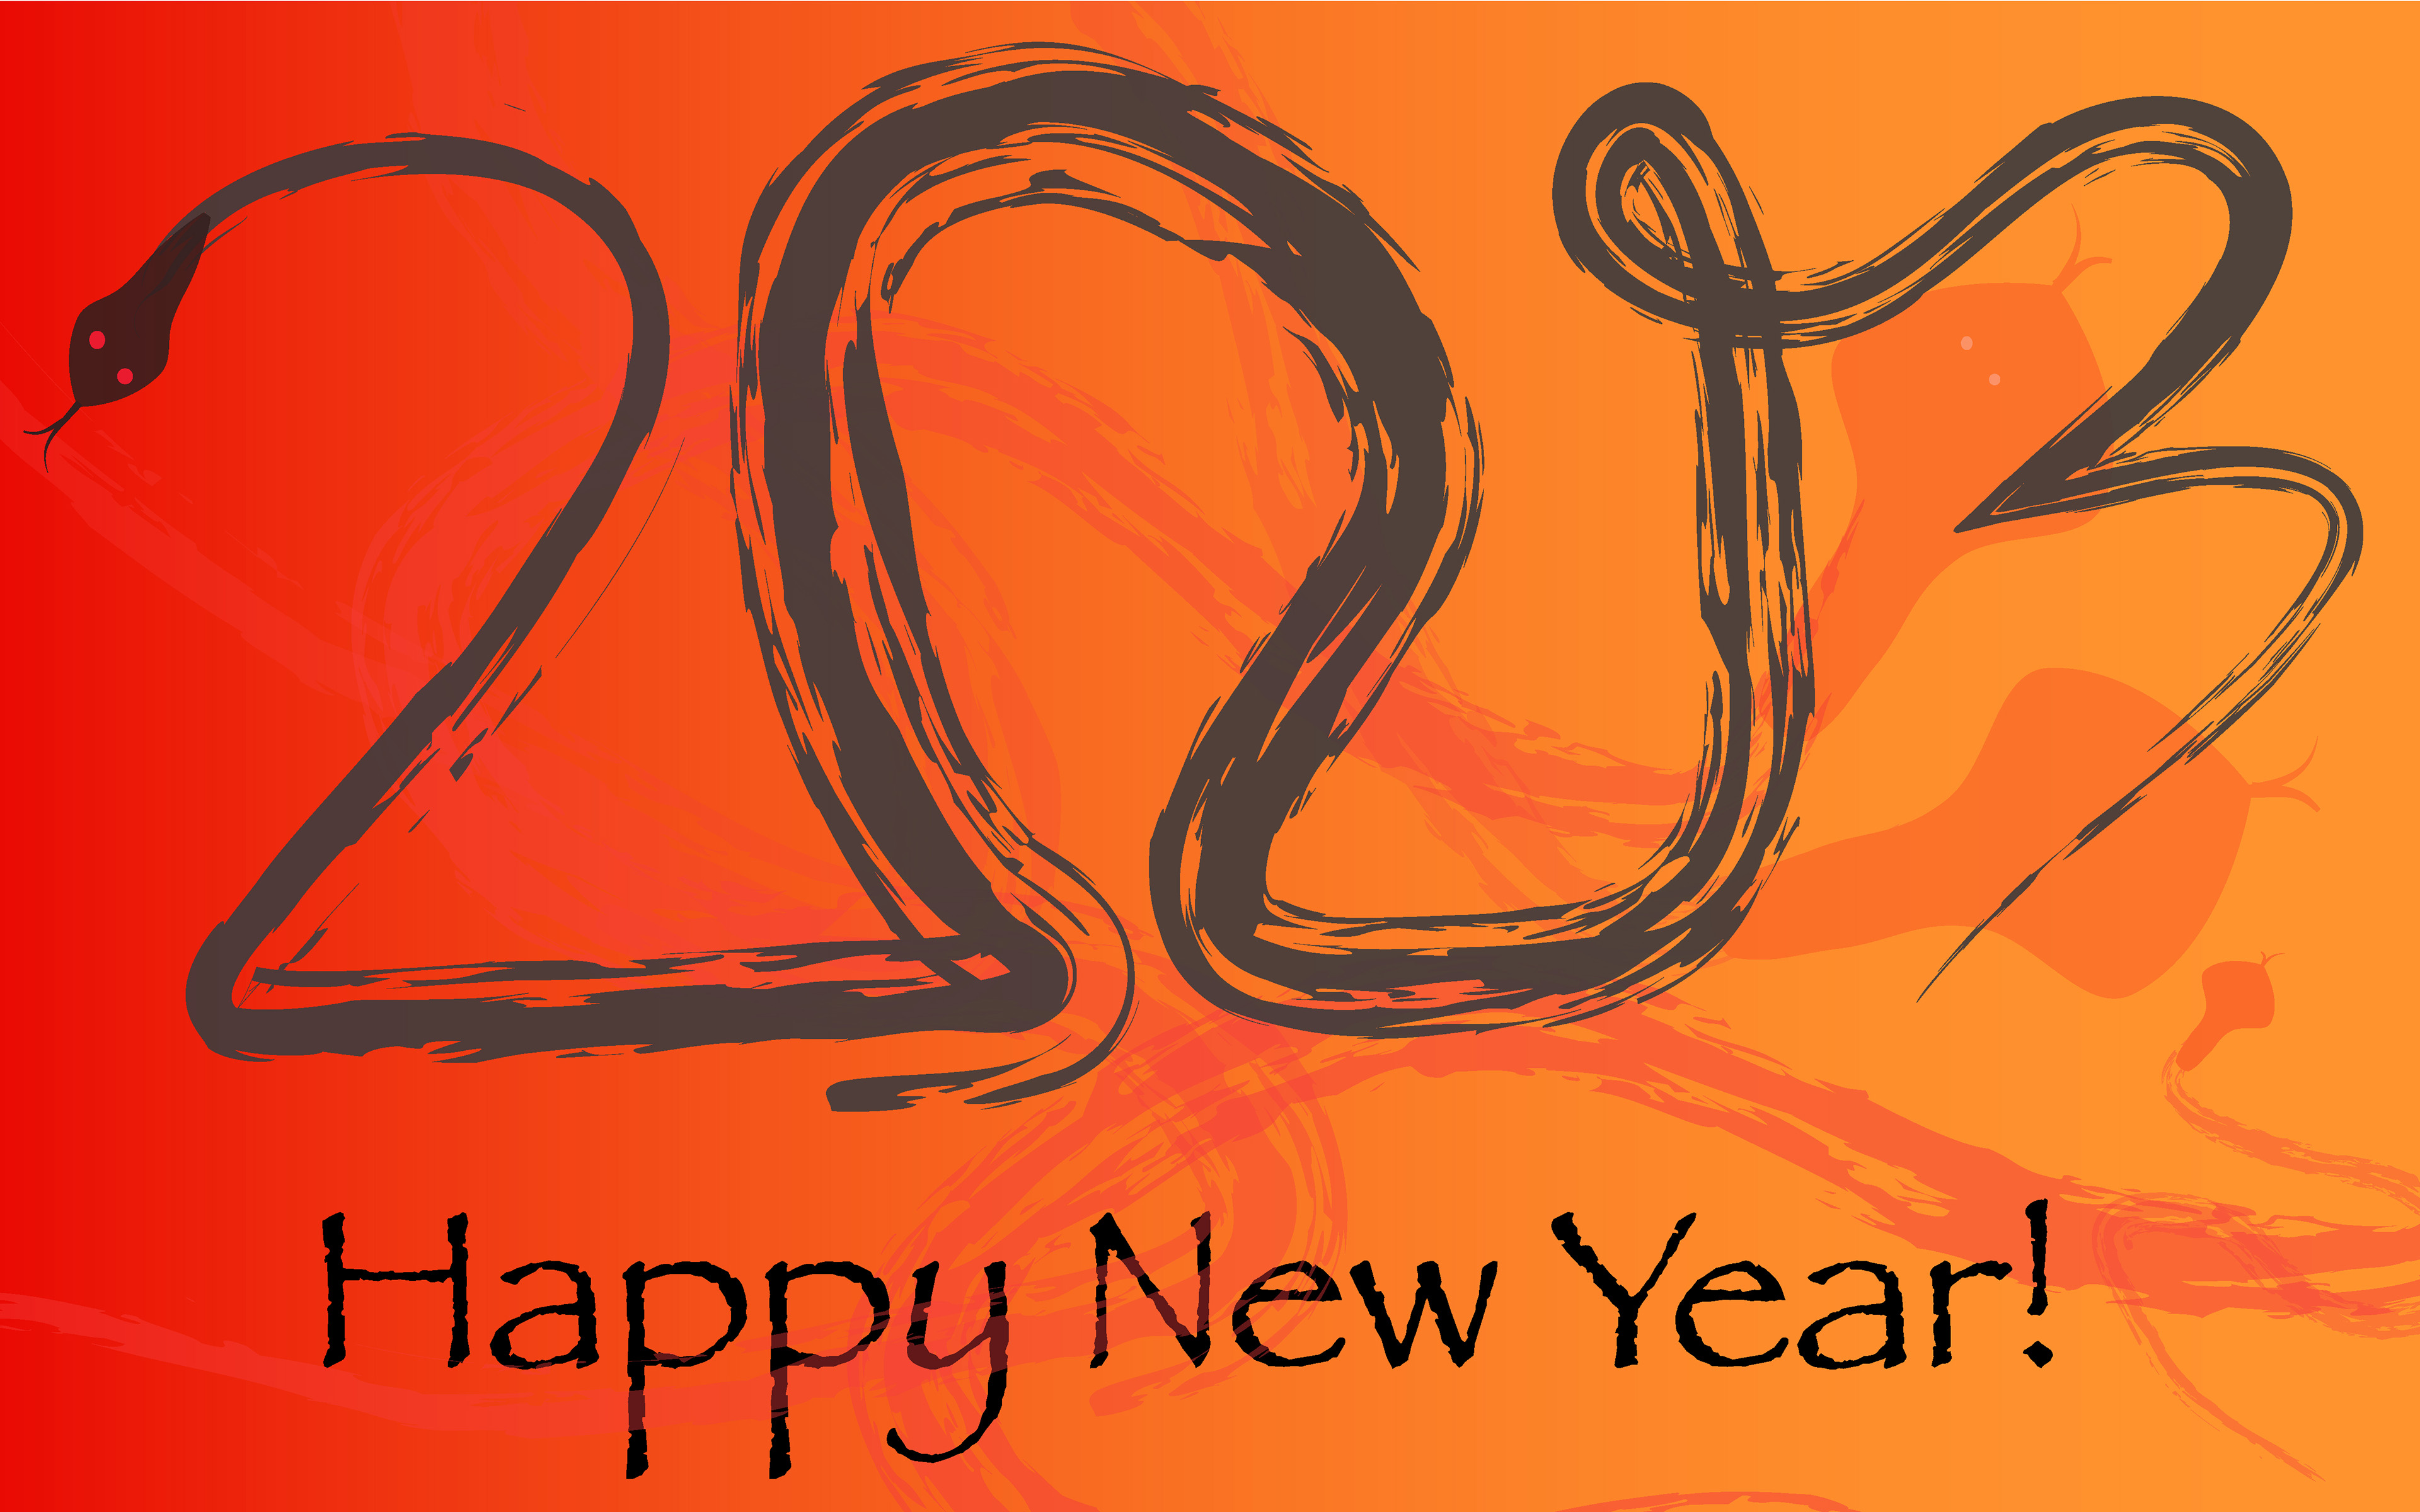 Happy New Year 2013 Wallpapers 3840×2400